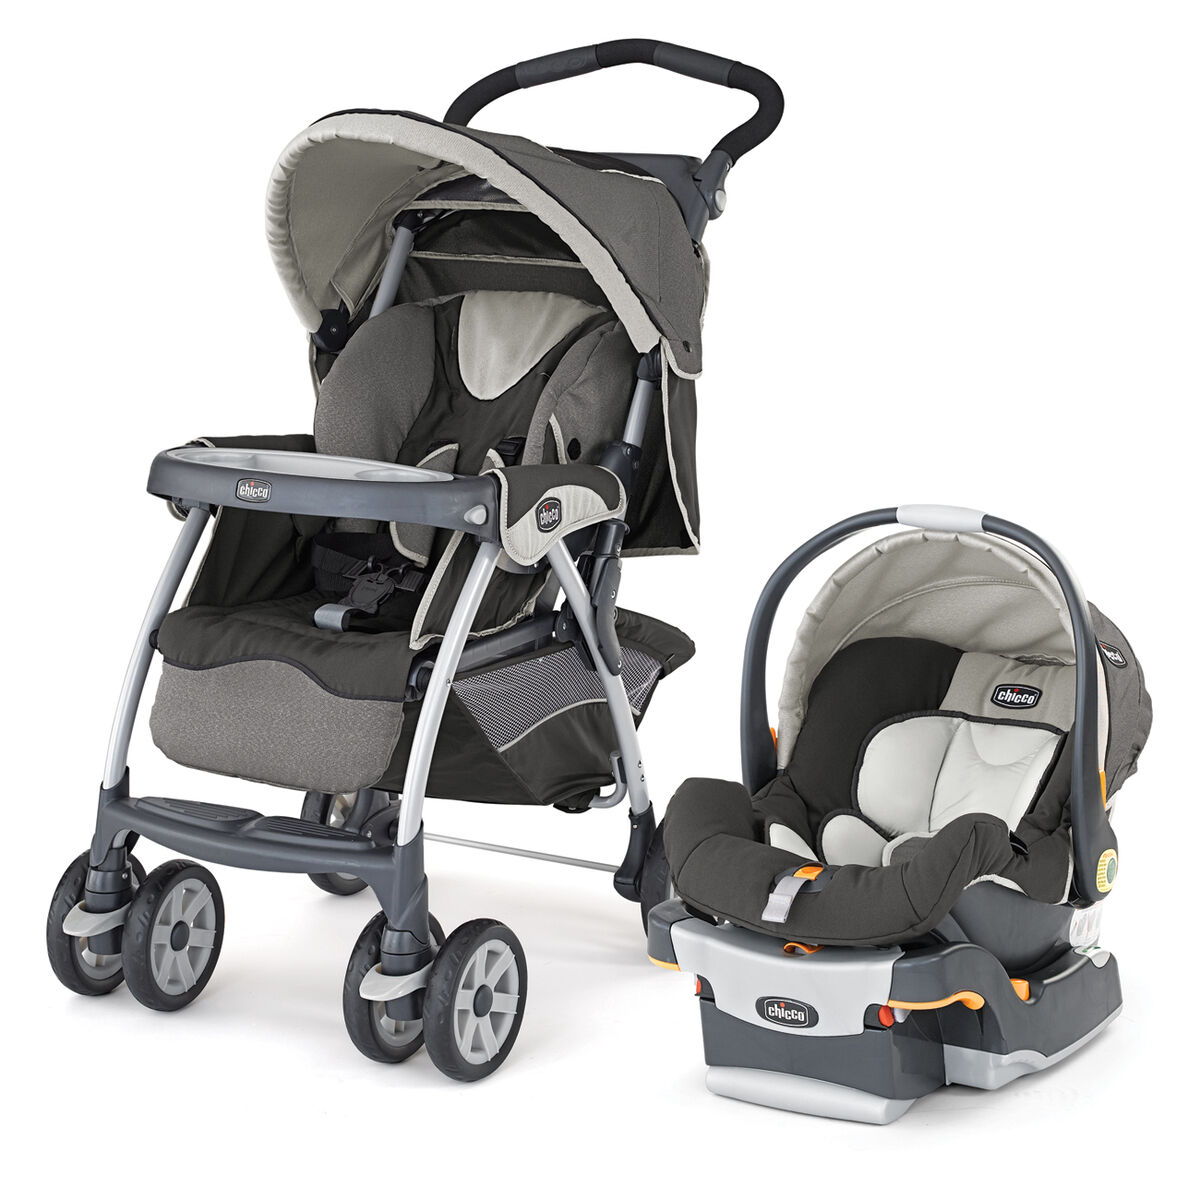 Cortina Travel System Perseo